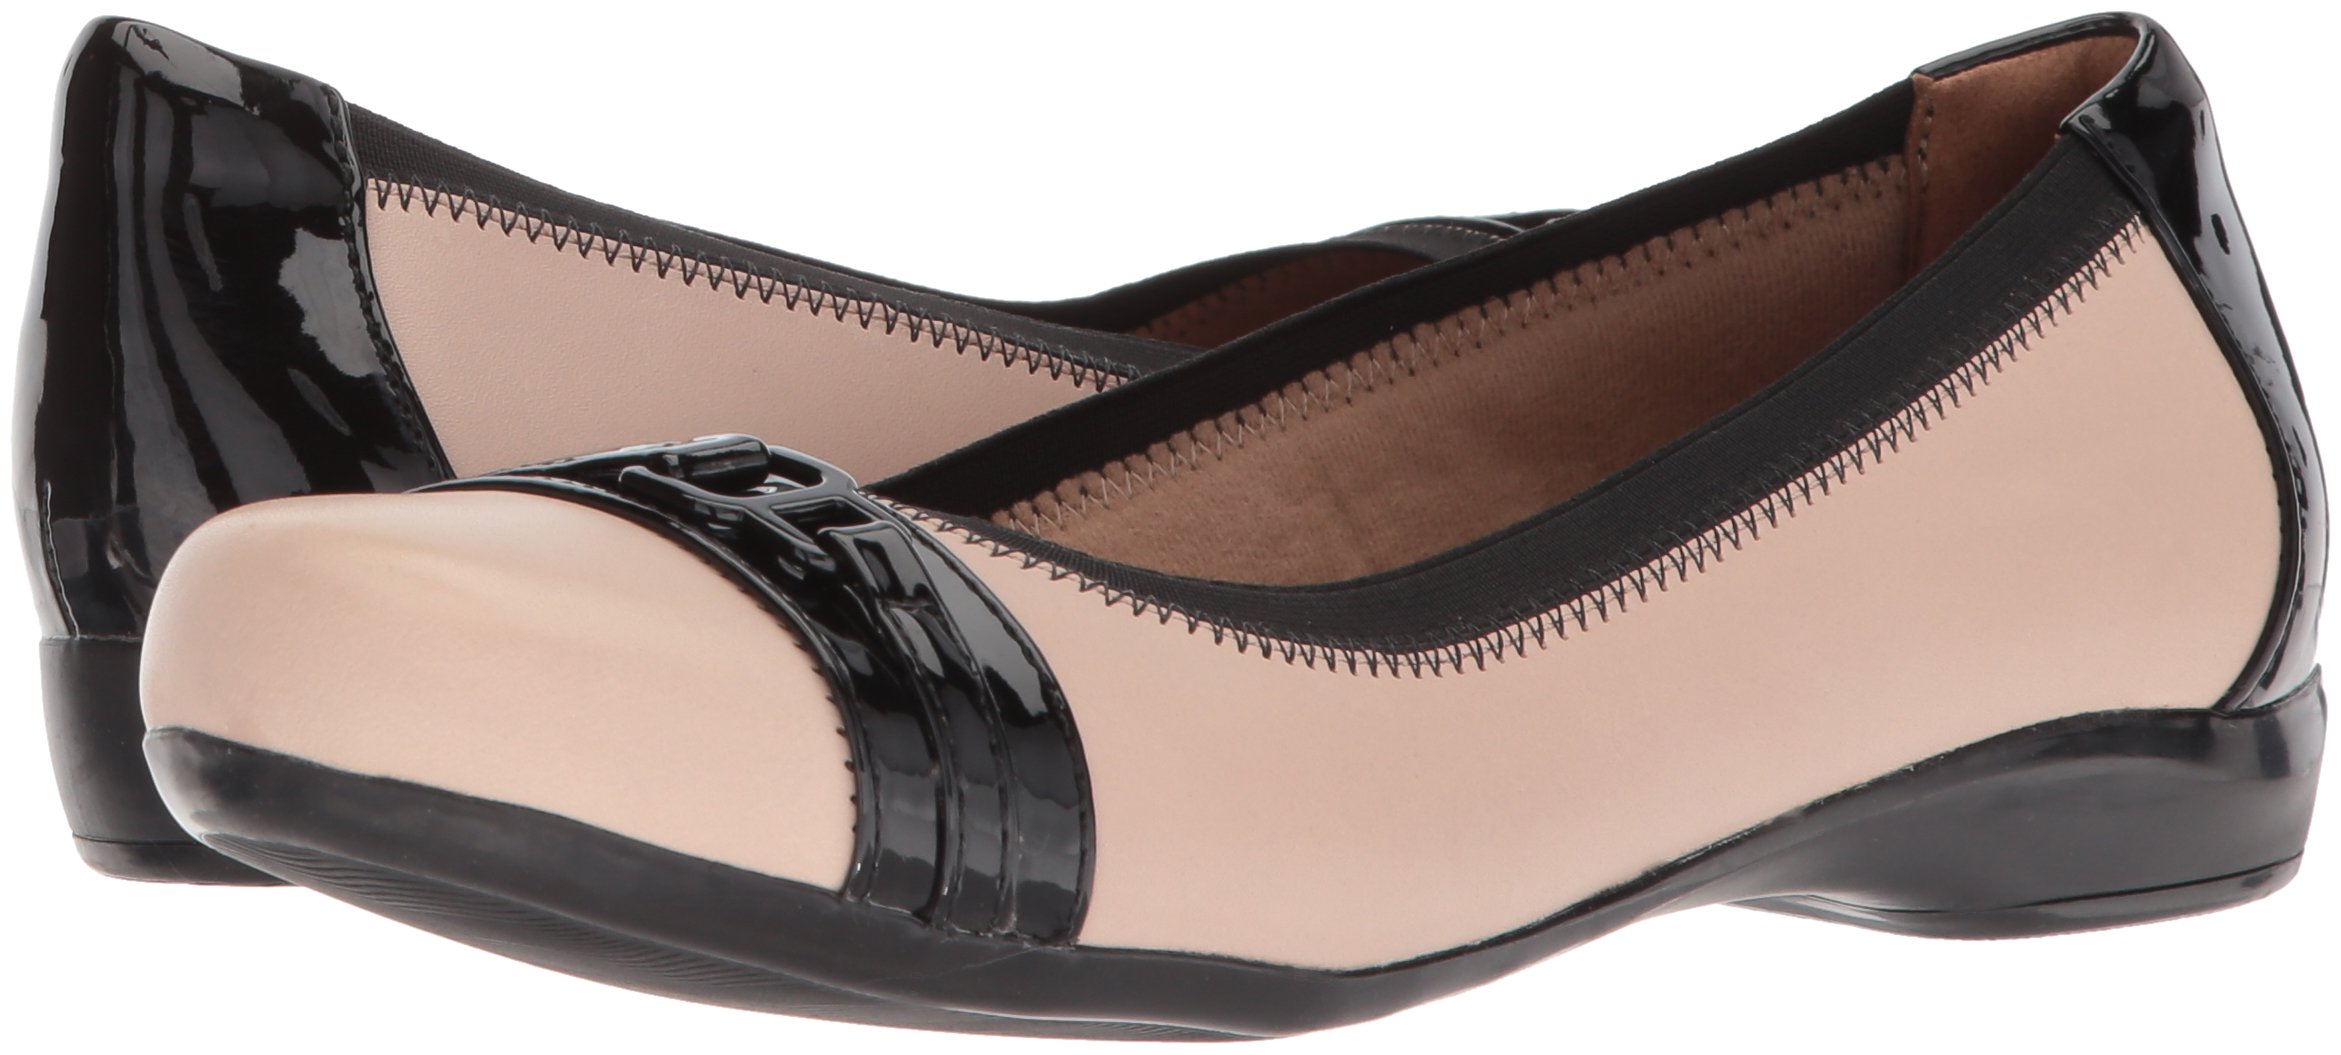 CLARKS Women's Kinzie Light Loafer Flat, Cream Leather/Synthetic Patent, 12 Medium US by CLARKS (Image #6)